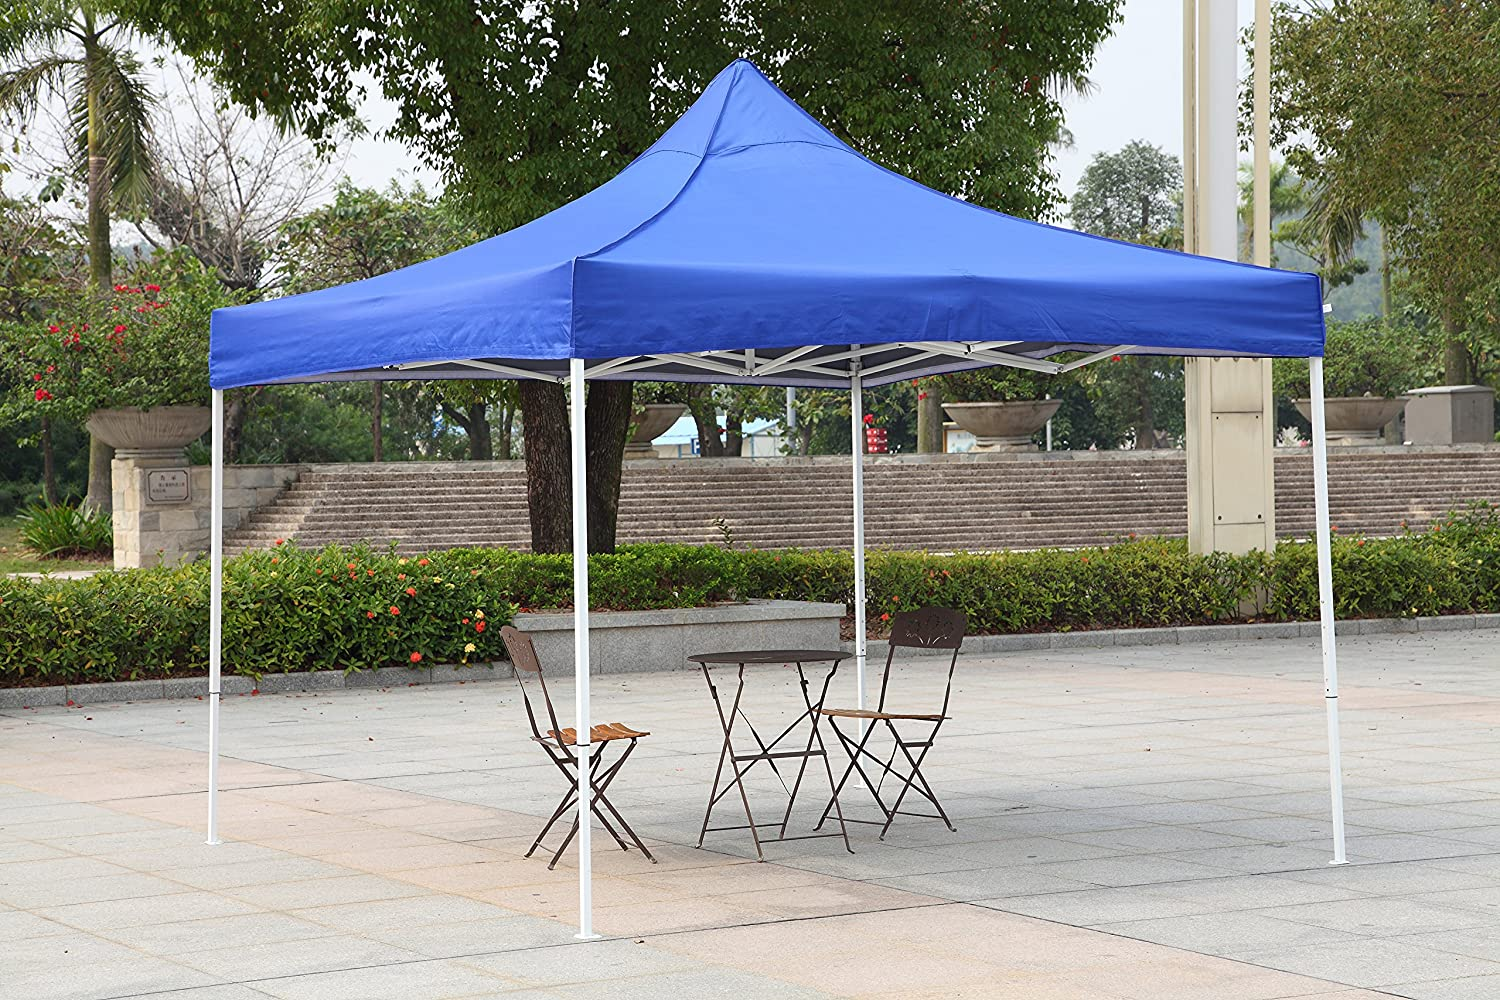 American Phoenix 10x10 10x15 10x20 [White Frame] Portable Event Canopy Tent, Canopy Tent, Party Tent Gazebo Canopy Commercial Fair Shelter Car Shelter Wedding Party Easy Pop Up (Blue, 10x10)